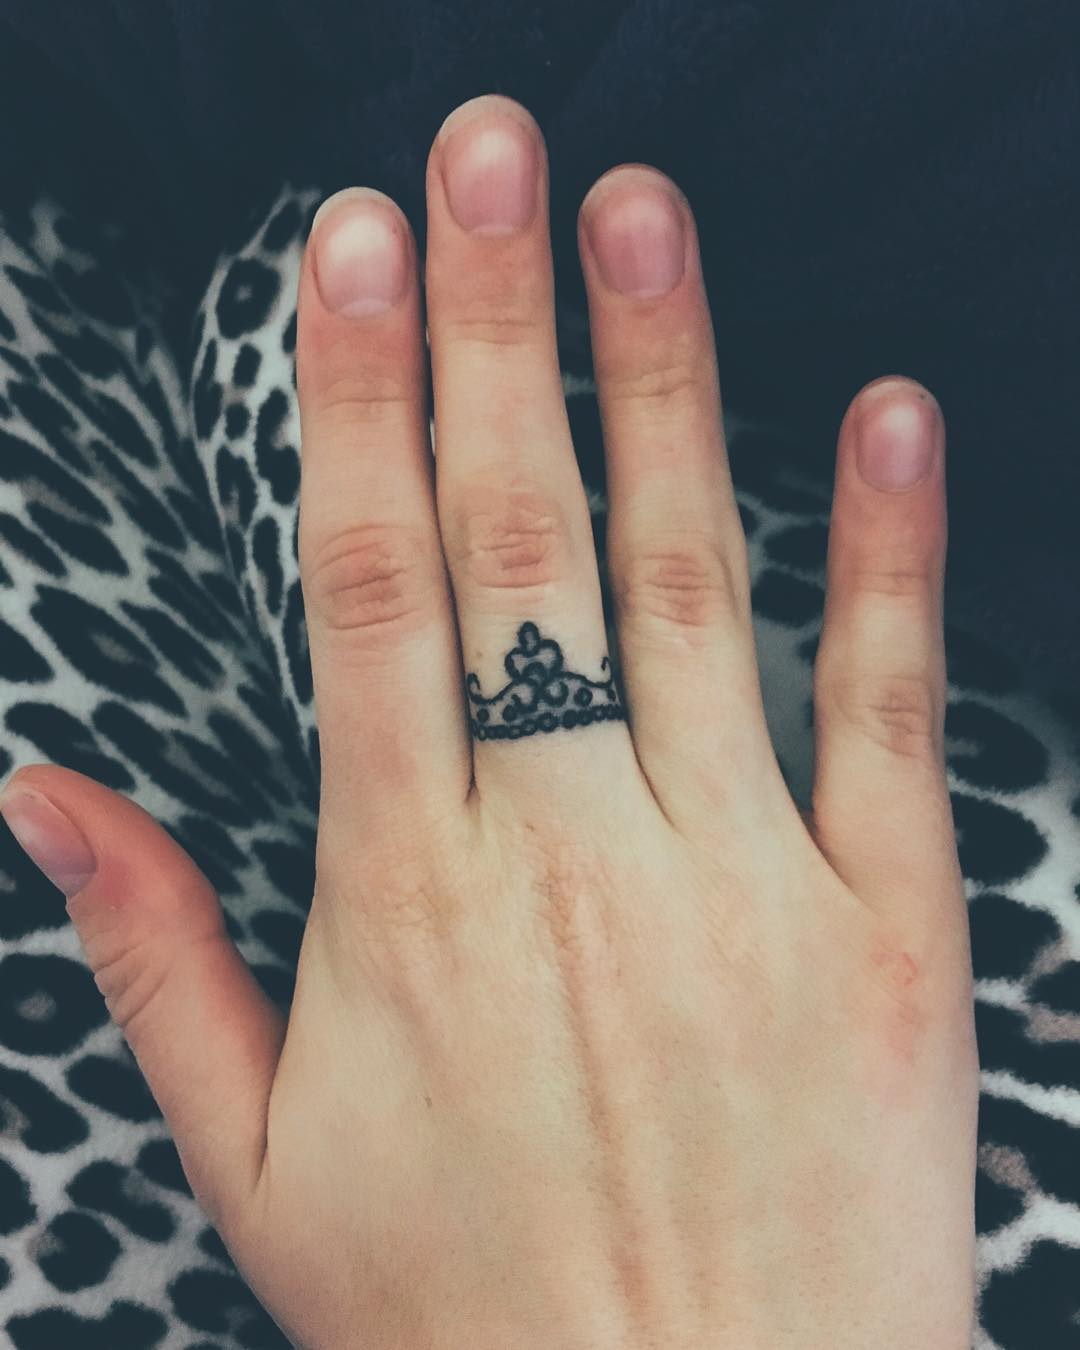 Small Ring Tattoo Small Meaningful Tattoos Meaningful